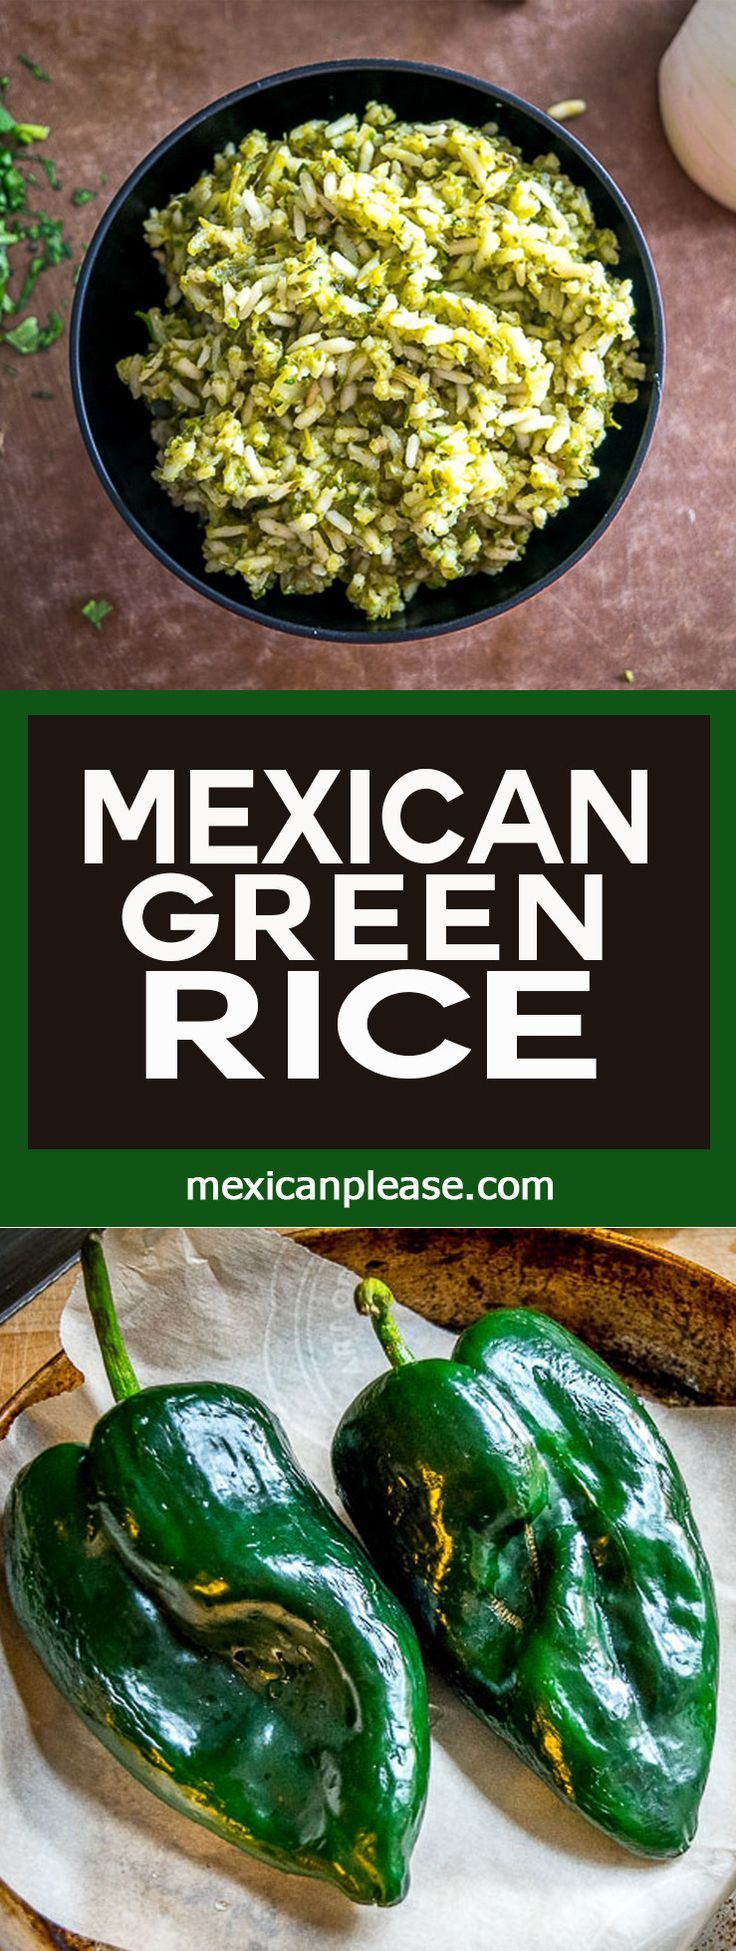 Roasted poblano peppers are the key to this authentic Mexican Green Rice. I've also been adding a handful of spinach to it lately. So good! mexicanplease.com